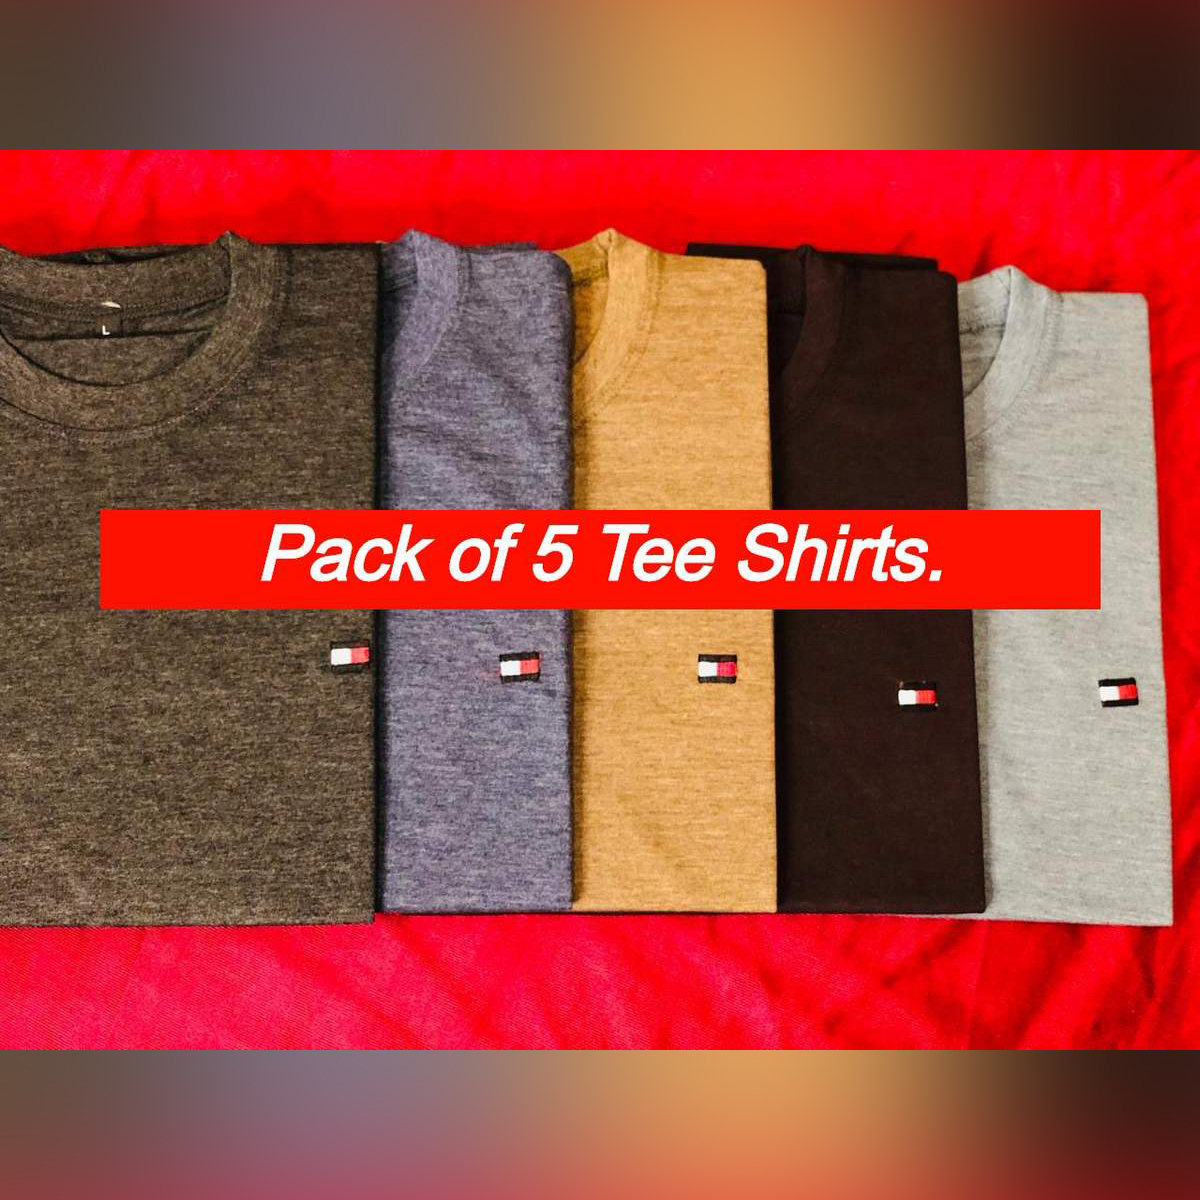 Pack of 5 Multi-Color Tee Shirts for Men and Women - Unisex Tee Shirts